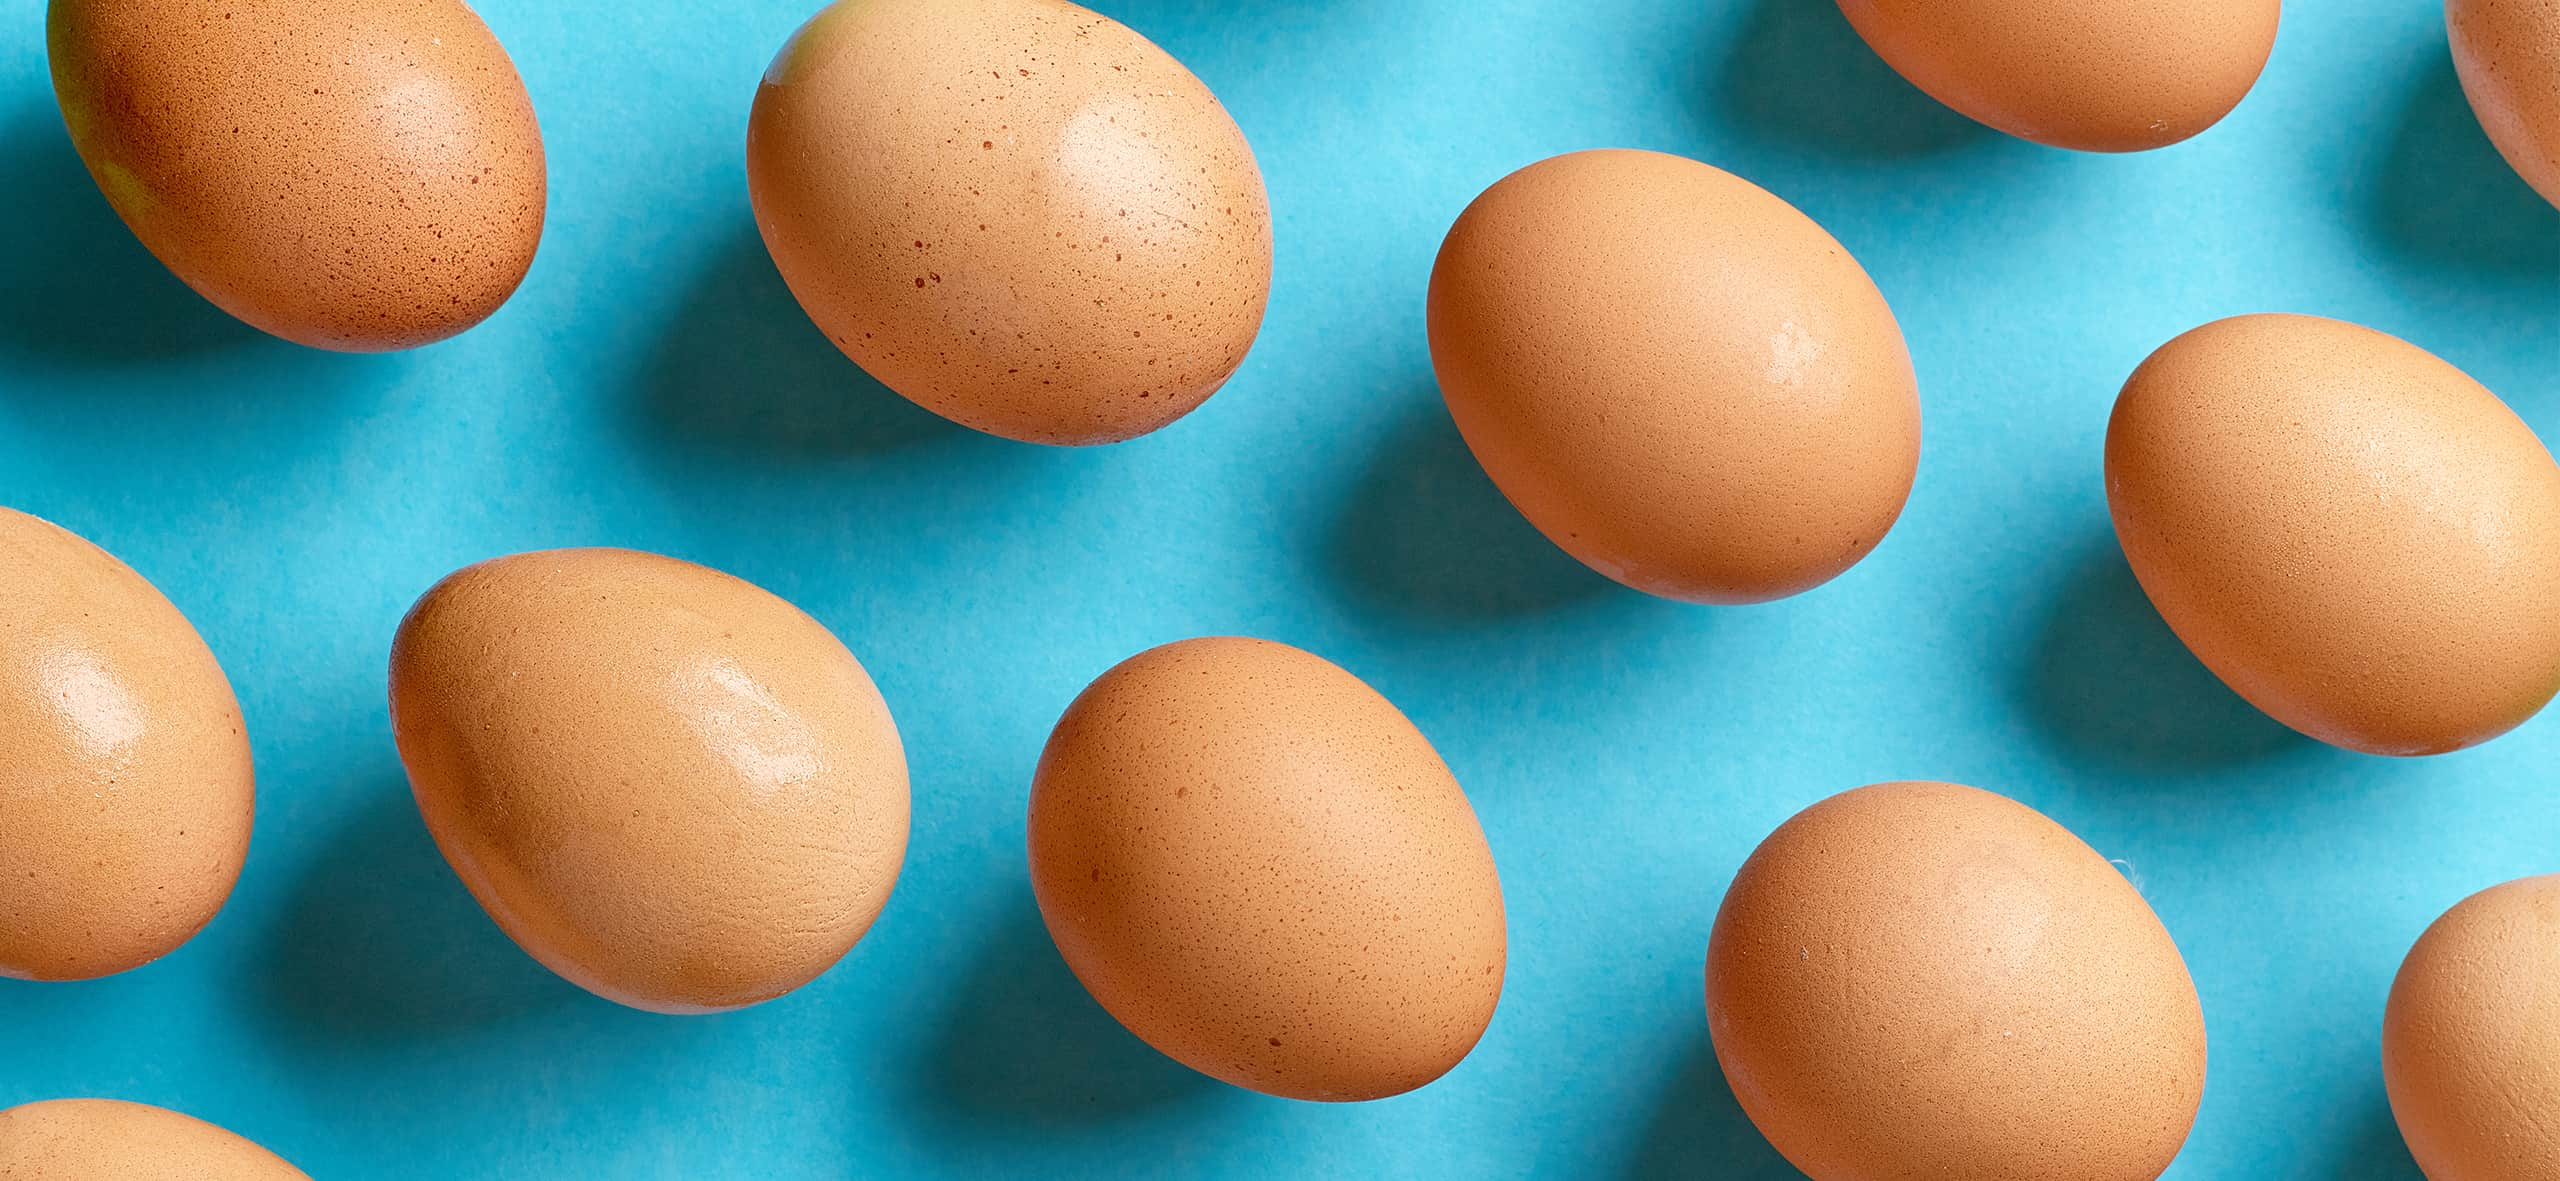 Egg quality: how do packaging and storage impact the final product?